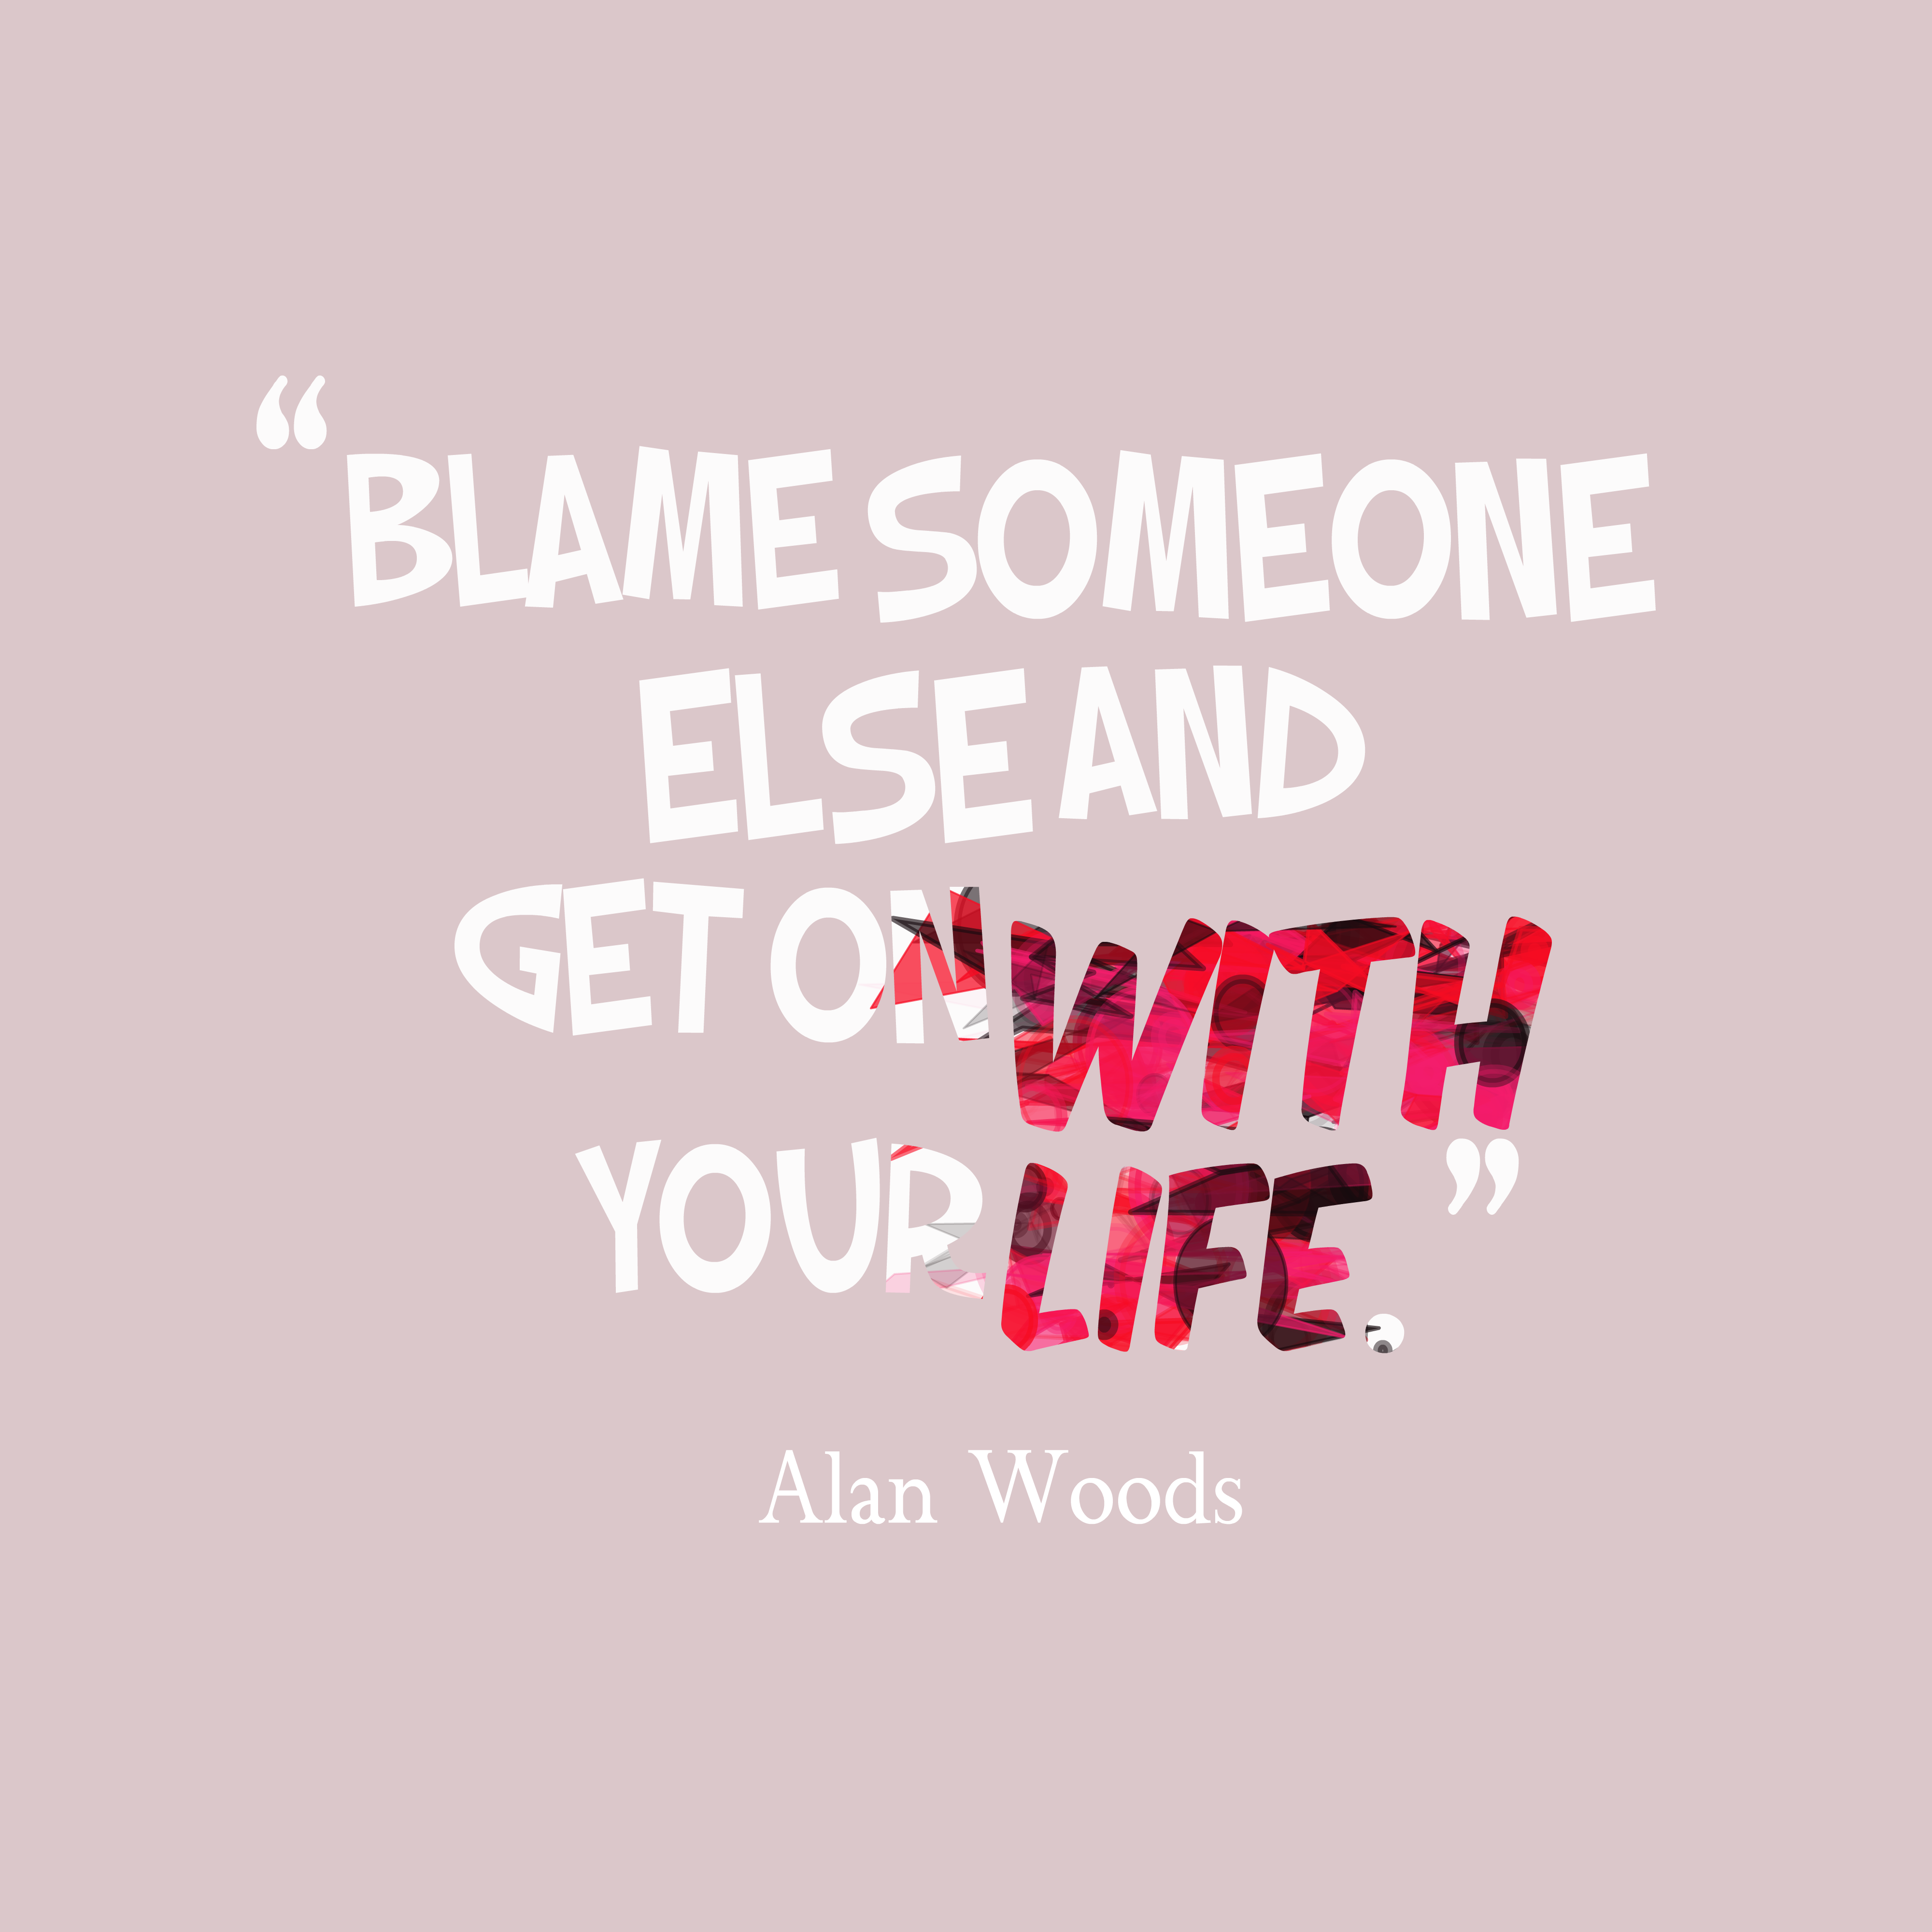 Quotes image of Blame someone else and get on with your life.